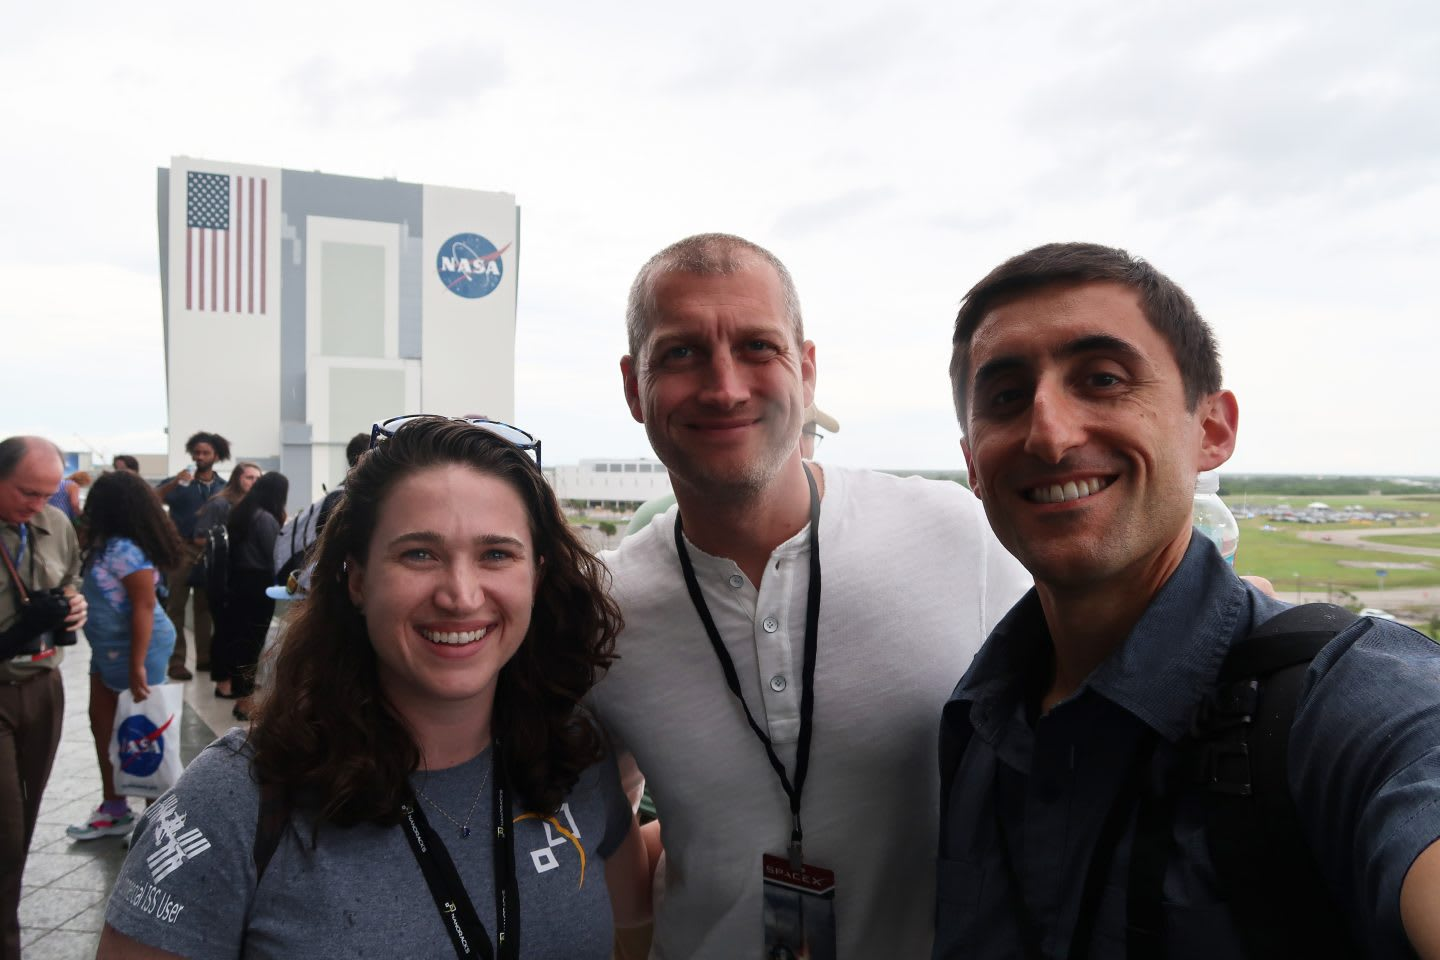 Two men and one woman standing together smiling in a group at NASA, spaces, ISS, sports, collaboration, teamwork, adidas, Nanorocks